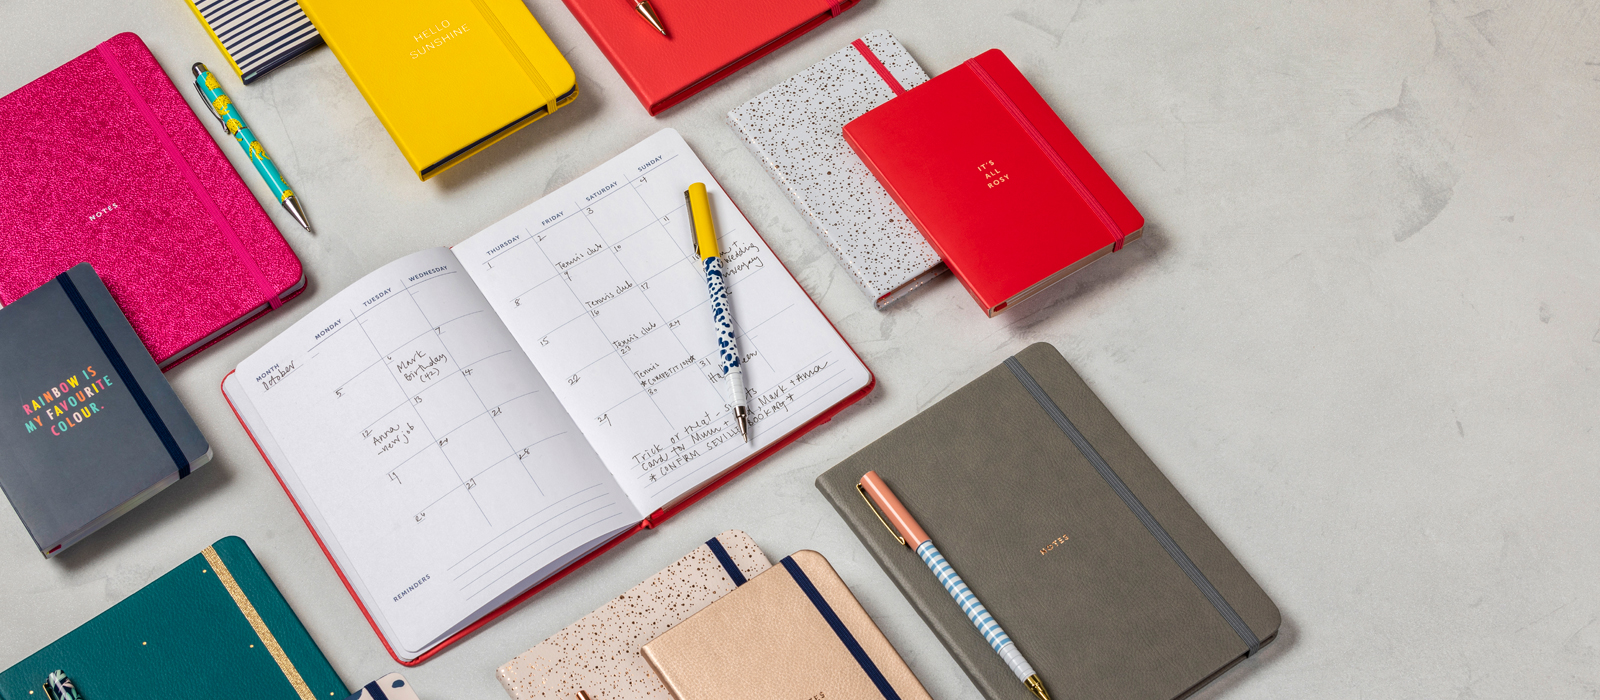 Busy Life Notebooks Banner Image